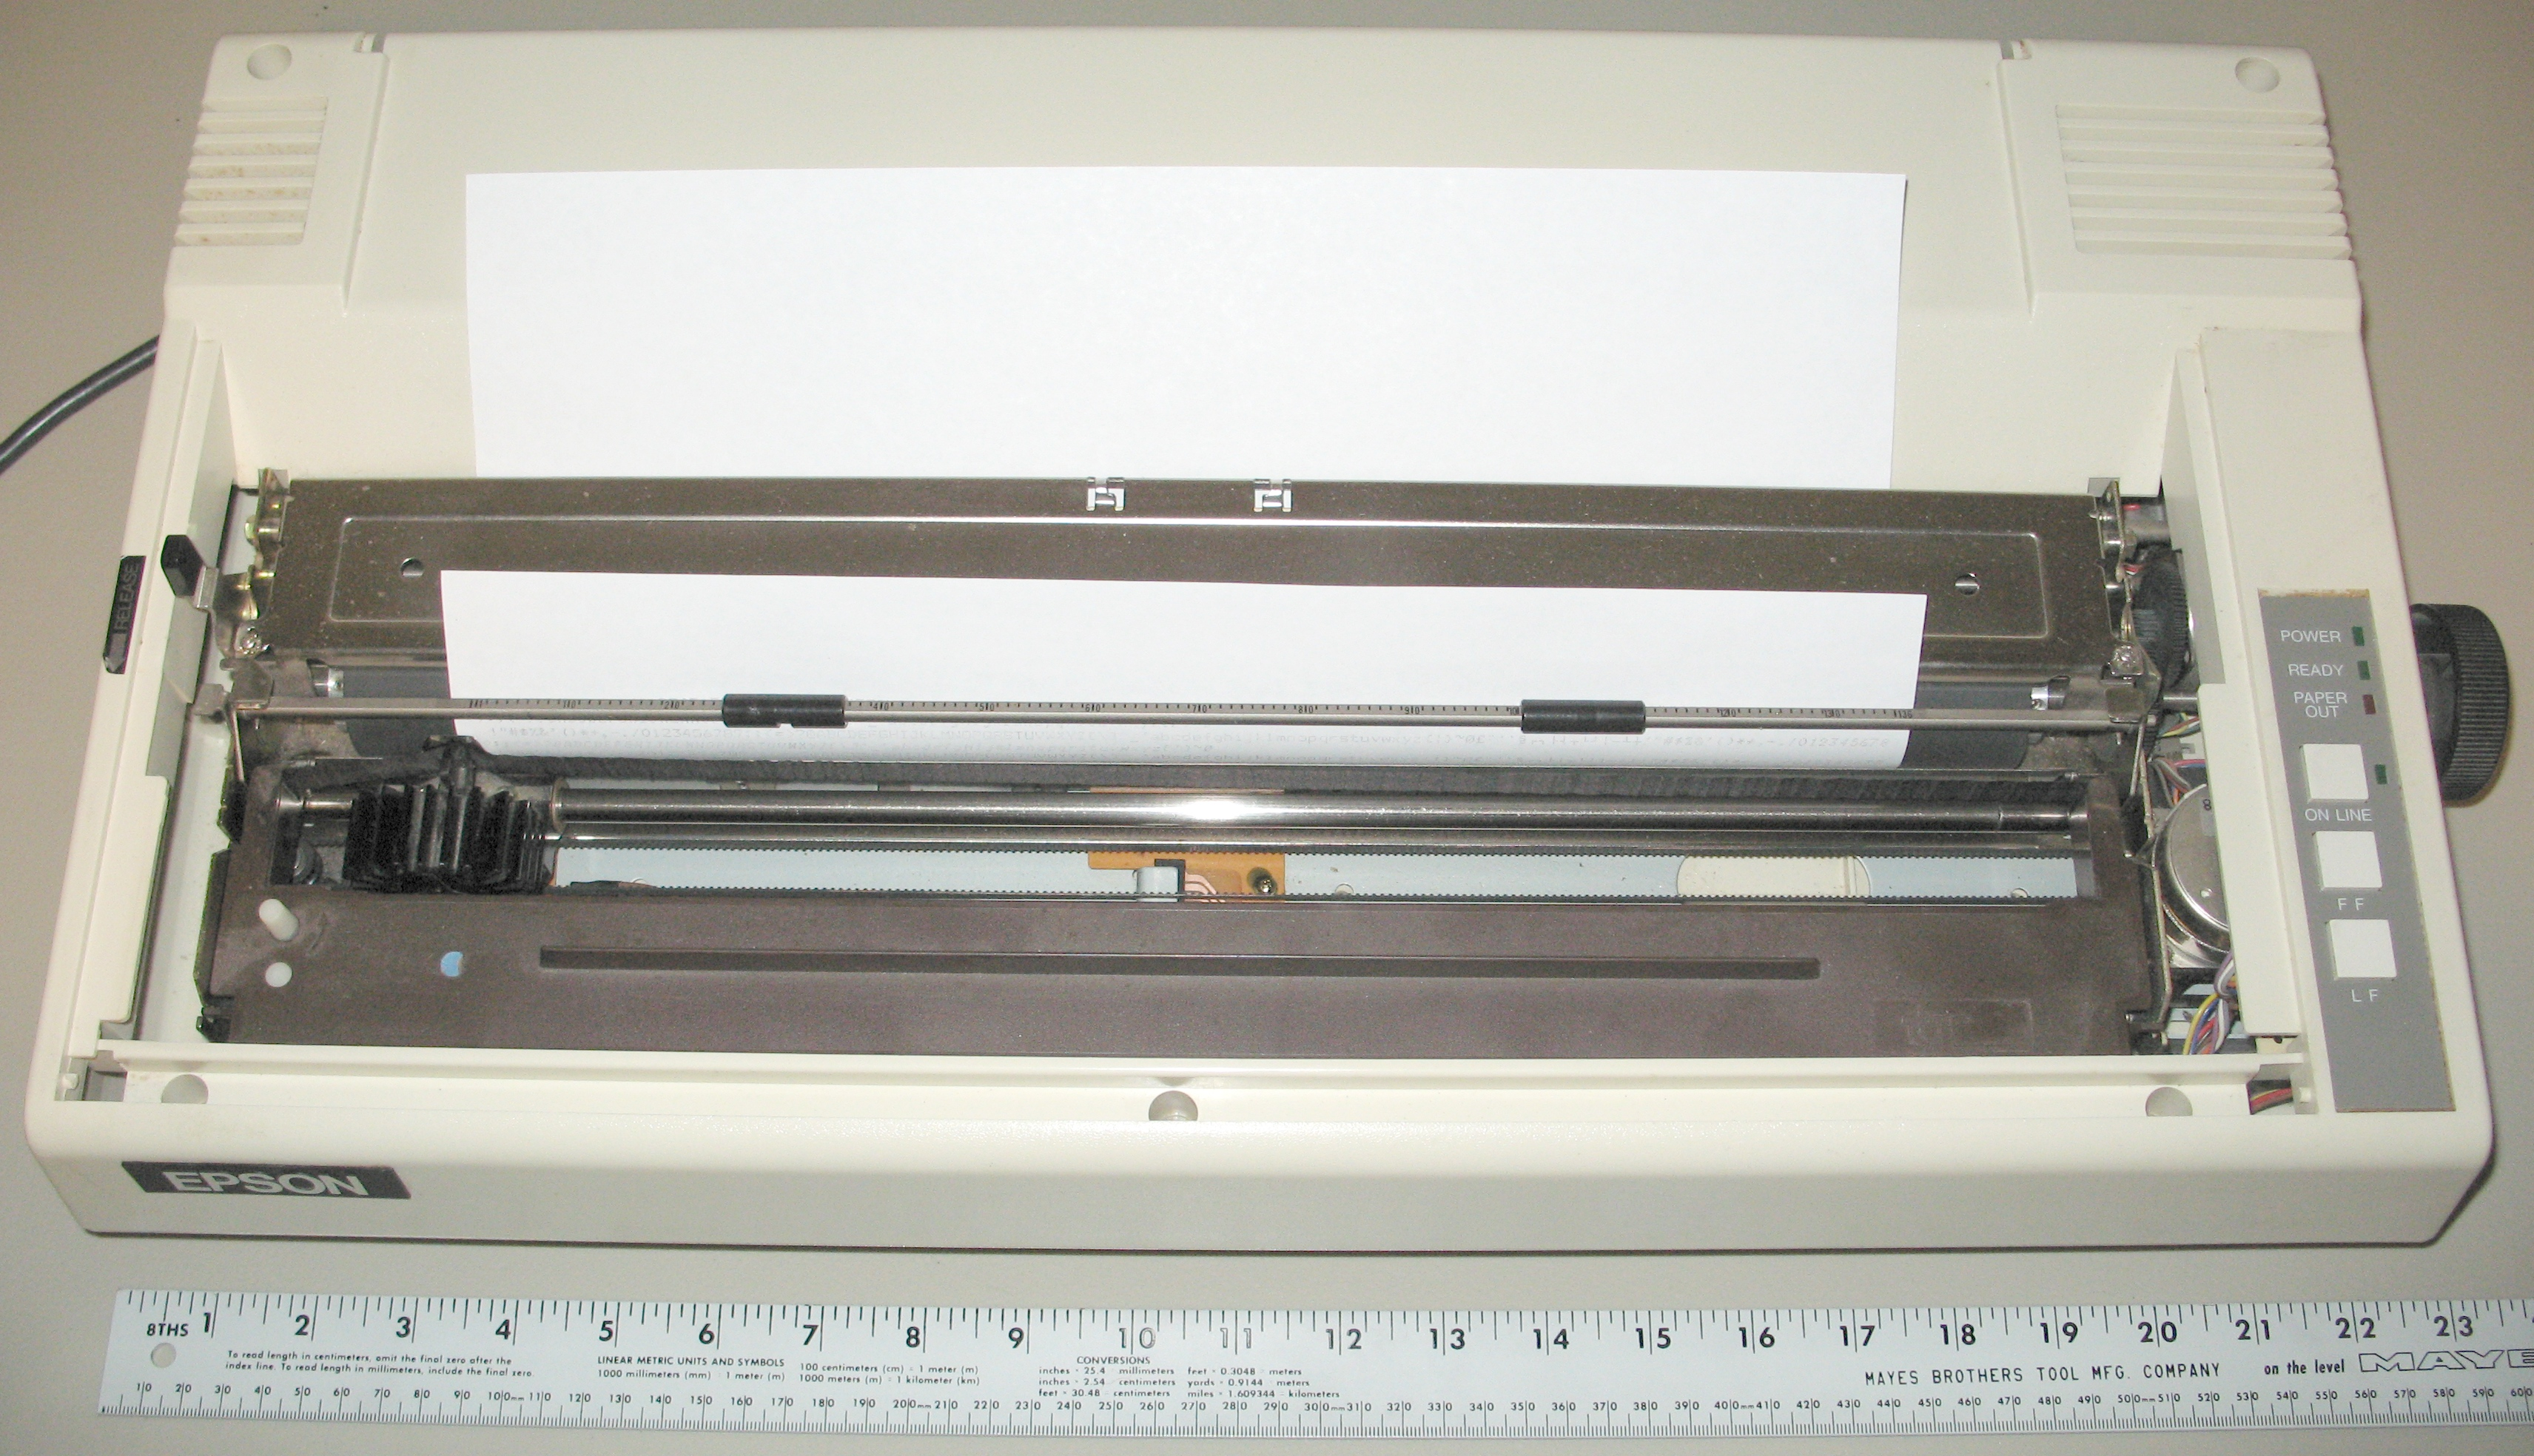 13 obsolete and outdated technologies people still use for Printer paper size